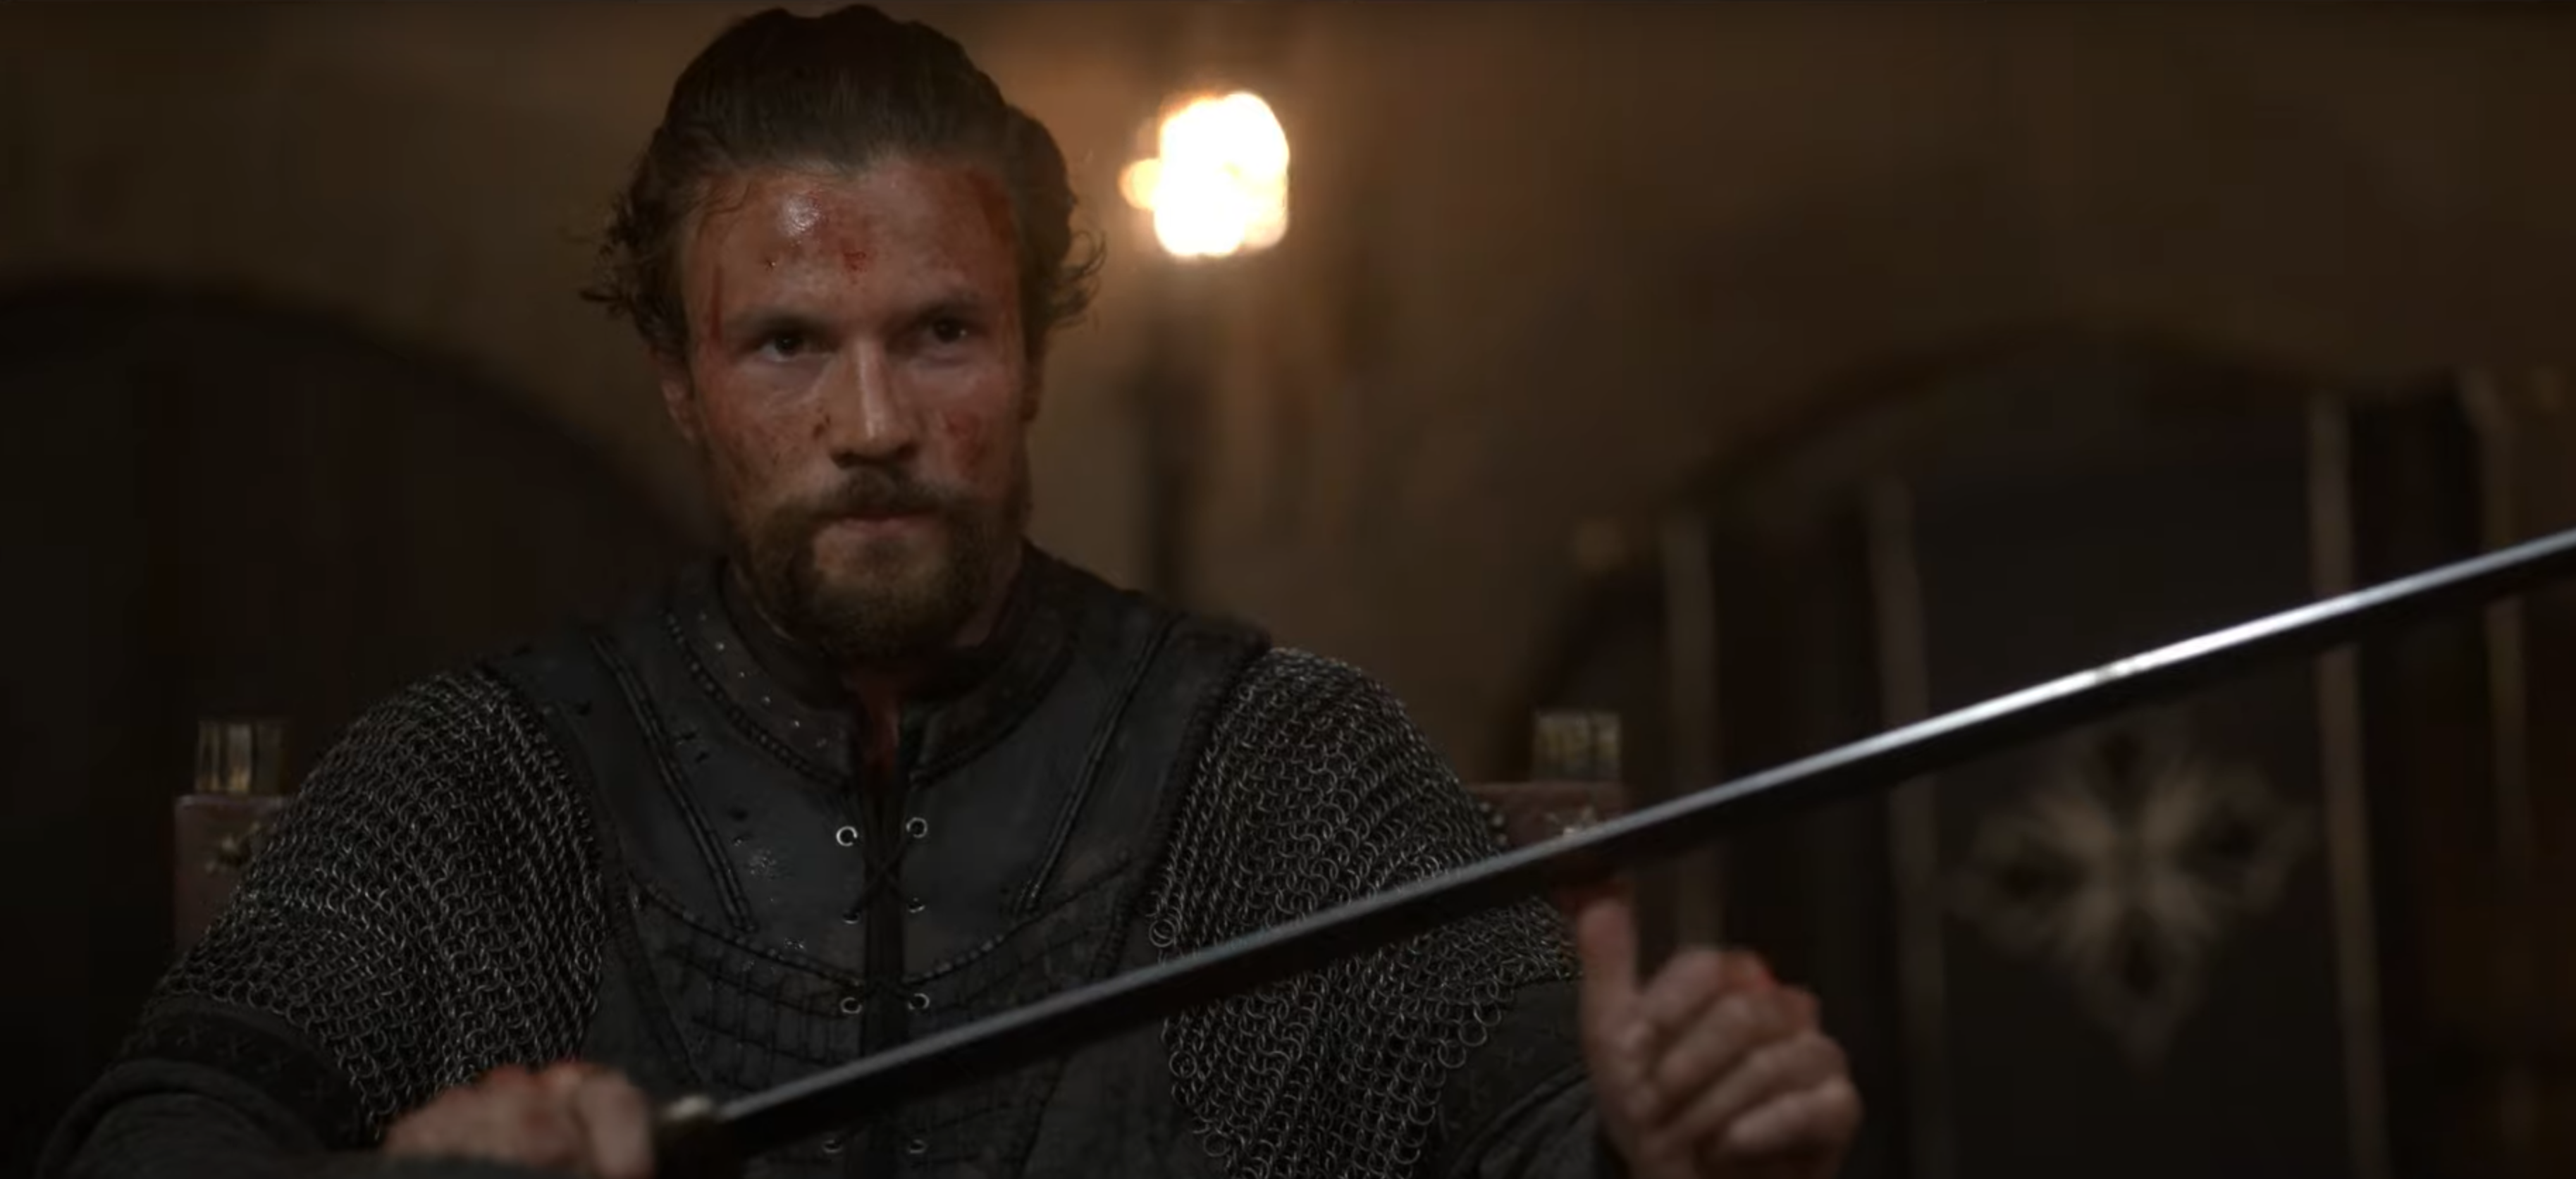 A character from Netflix's Vikings: Valhalla